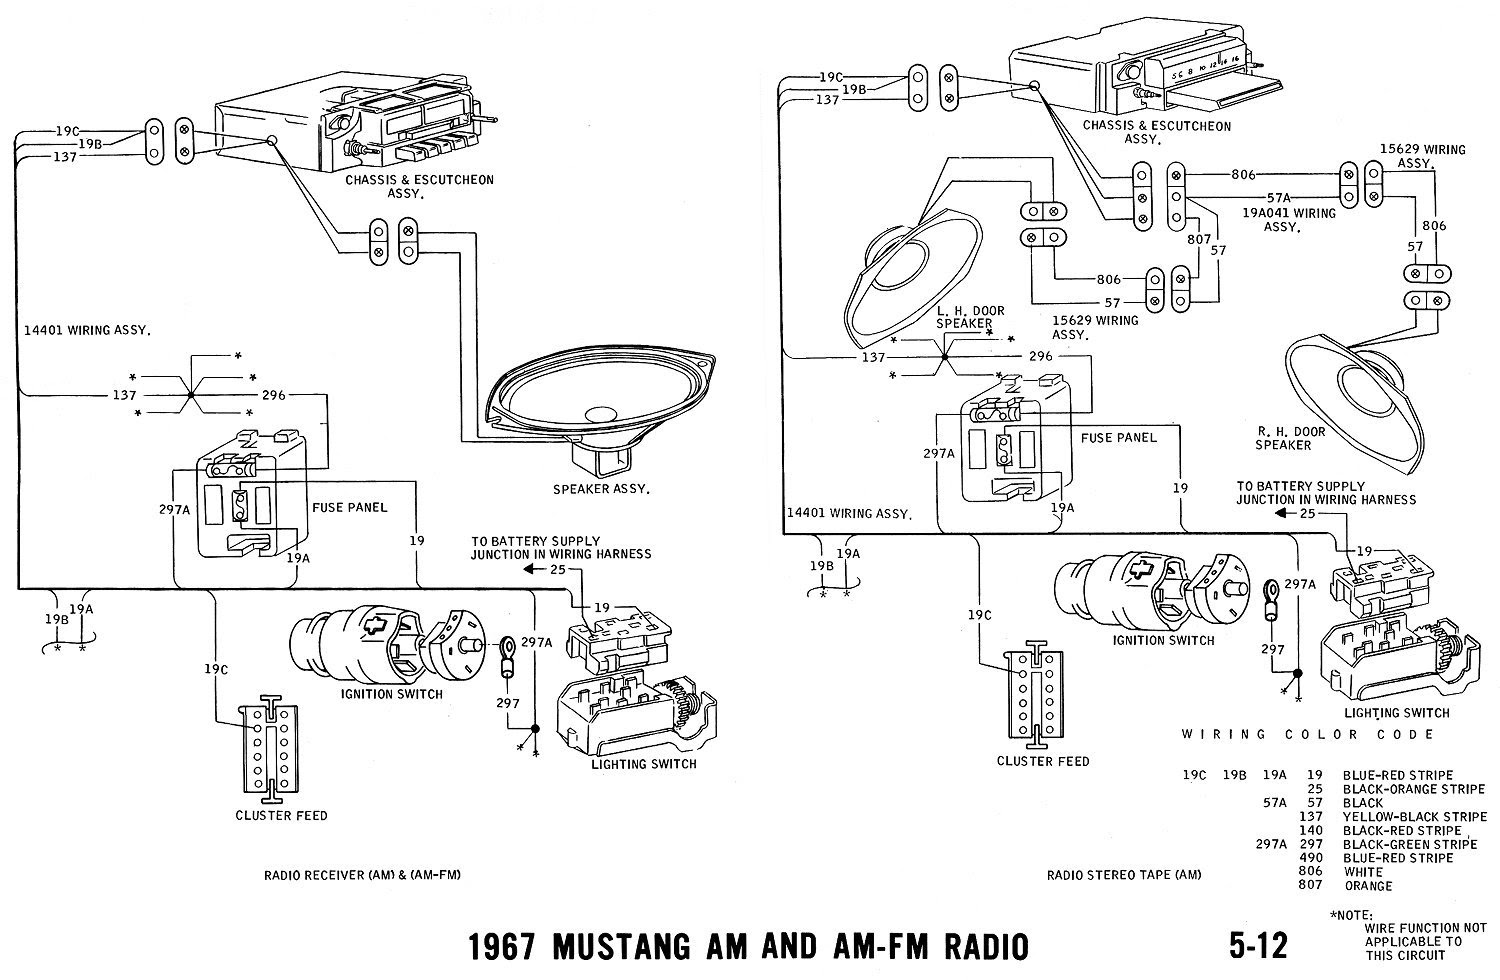 1967 Mustang Wiring And Vacuum Diagrams Average Joe Restoration Wiring Diagram Productive Productive Zaafran It